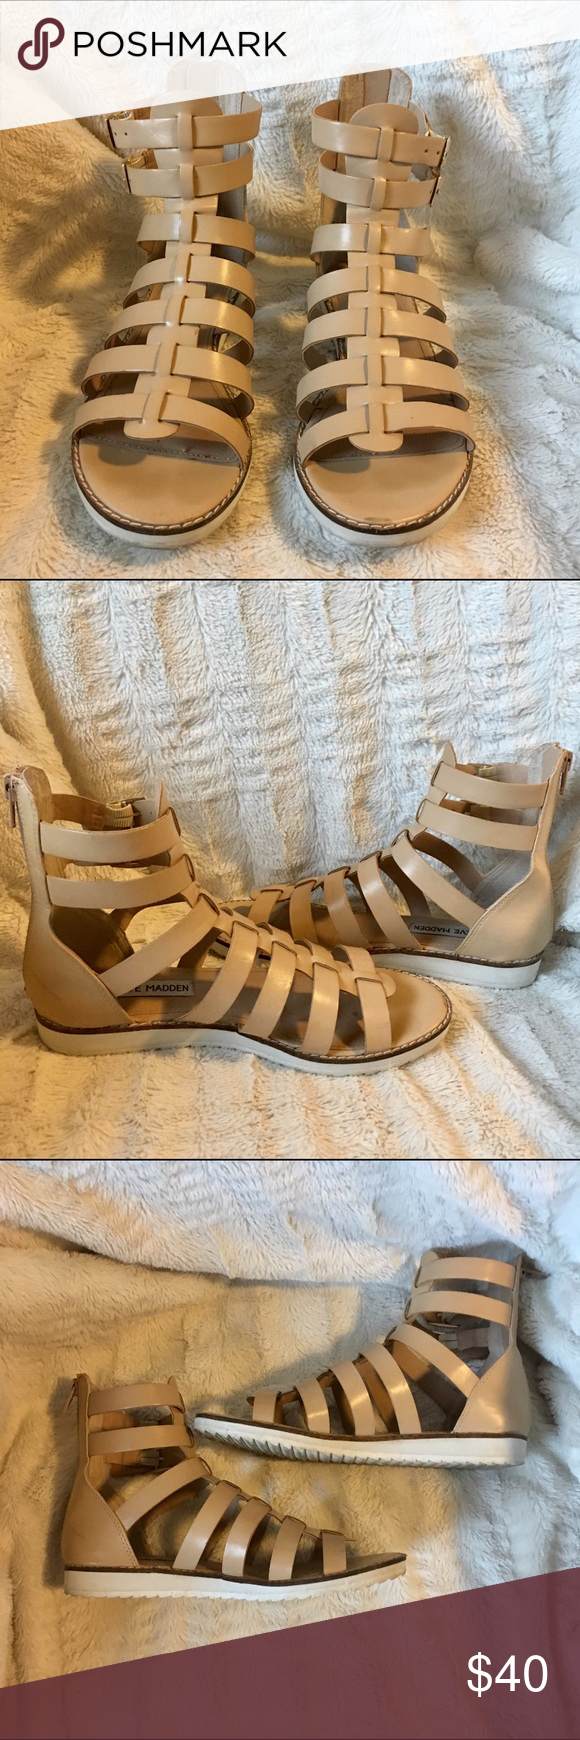 Steve Madden sandals size 6 Worn once in great condition Steve Madden Shoes Sandals